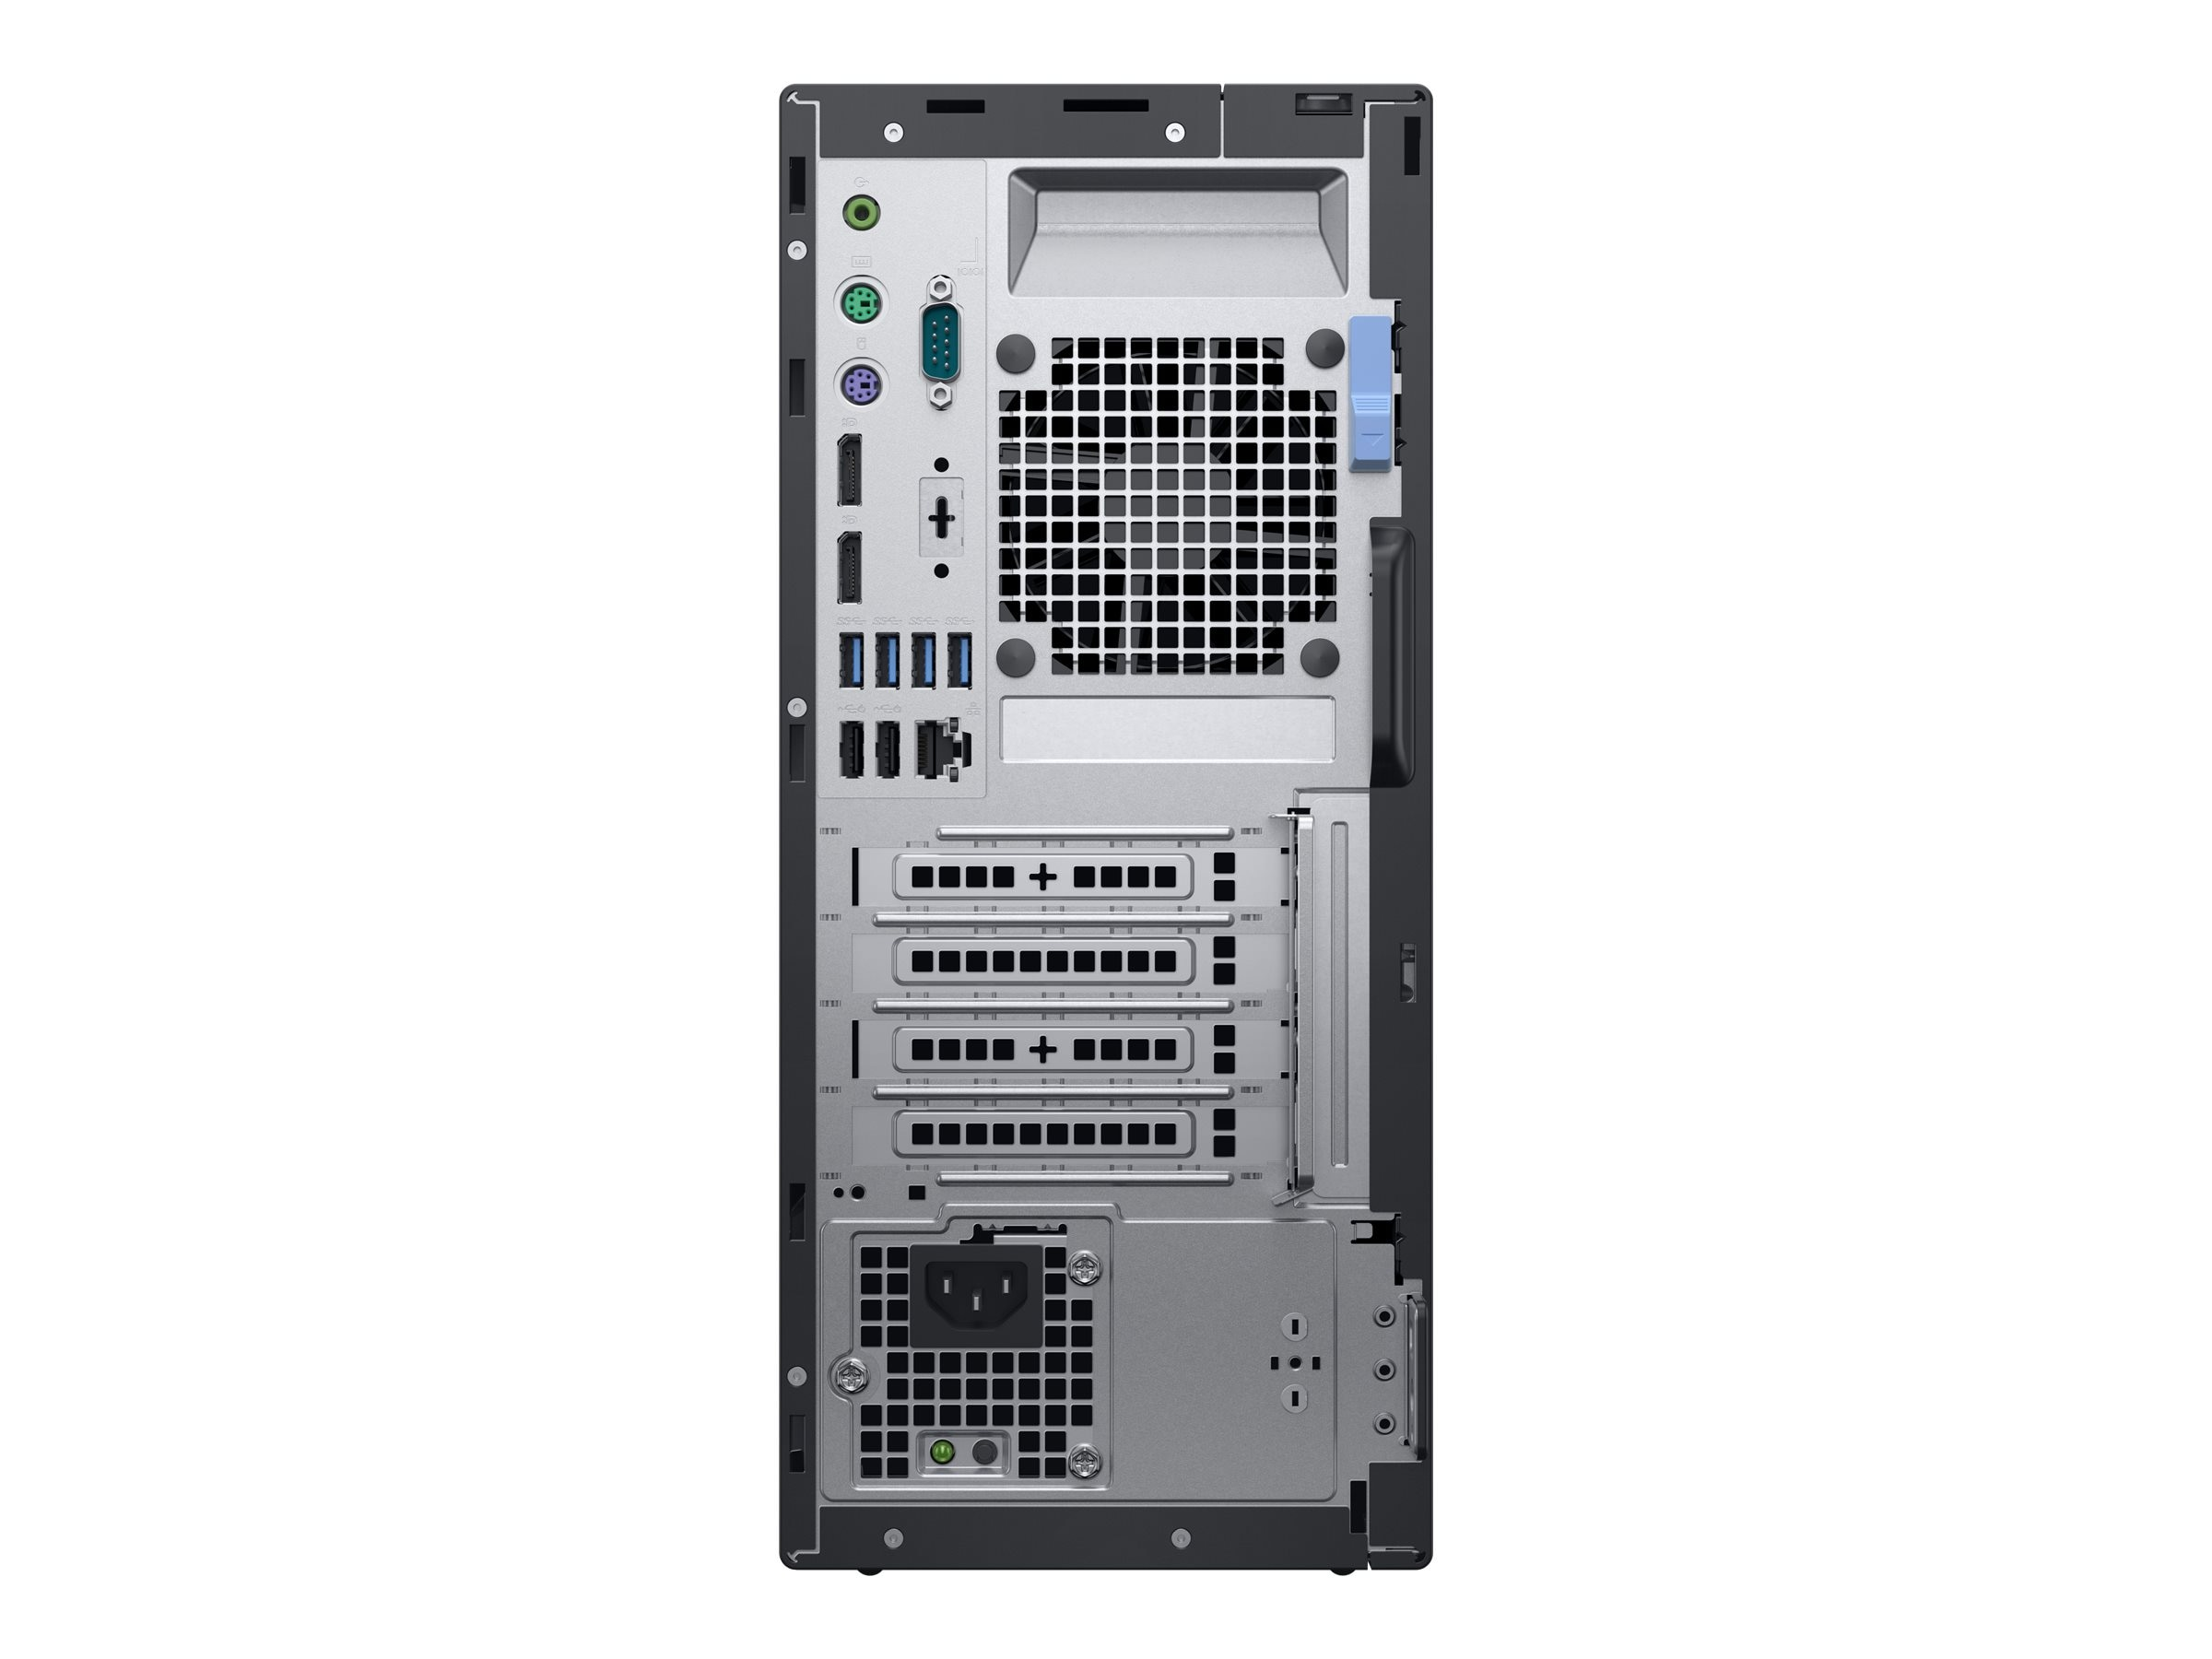 Dell OptiPlex 7060 3 2GHz Core i7 8GB RAM 1TB hard drive